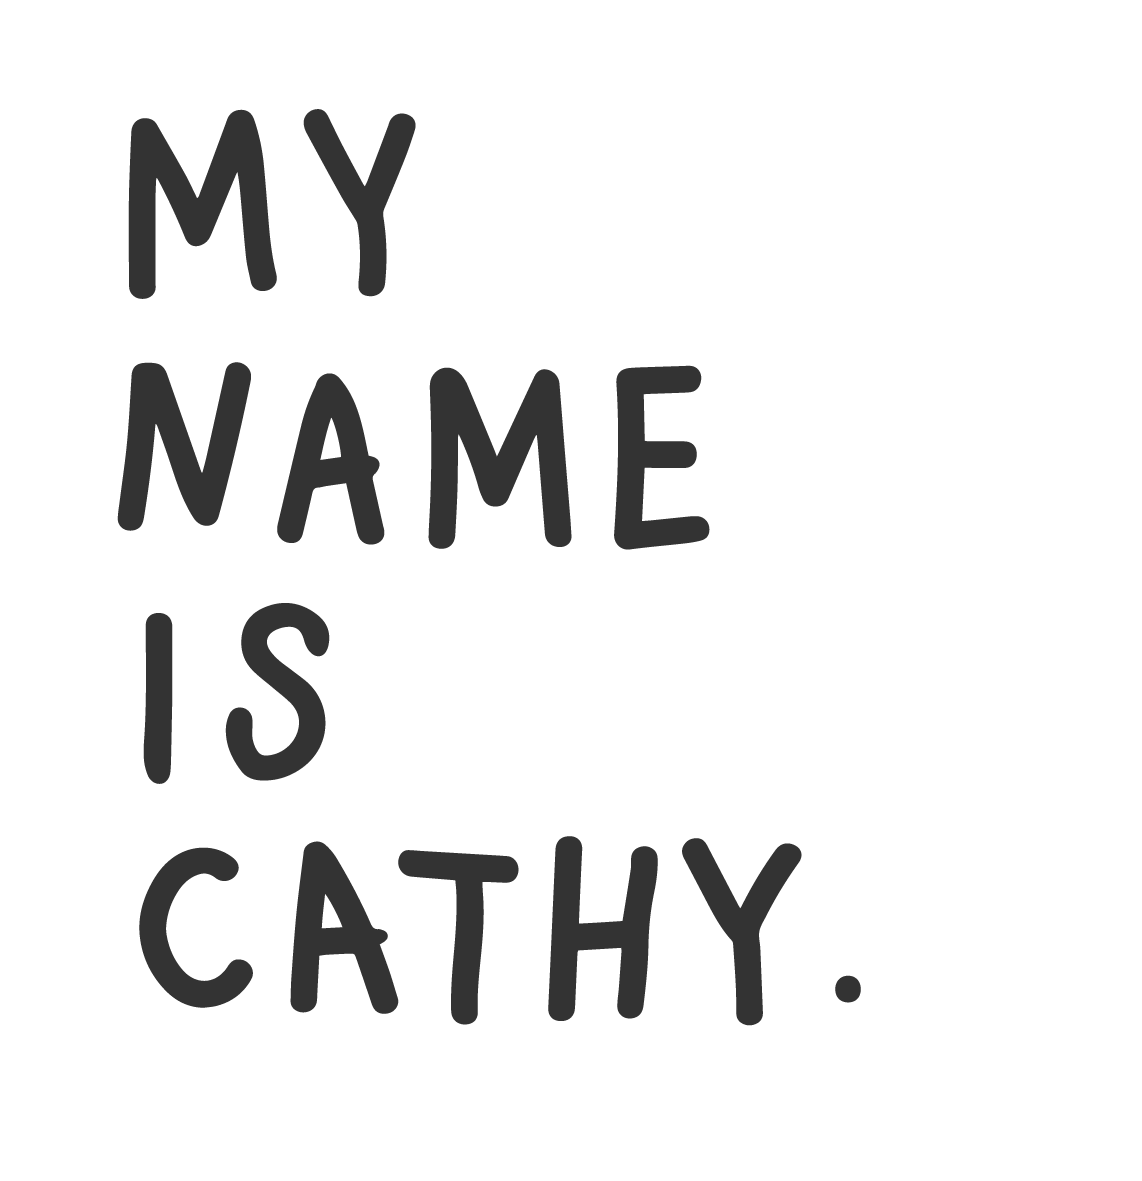 Hello, my name is Cathy.